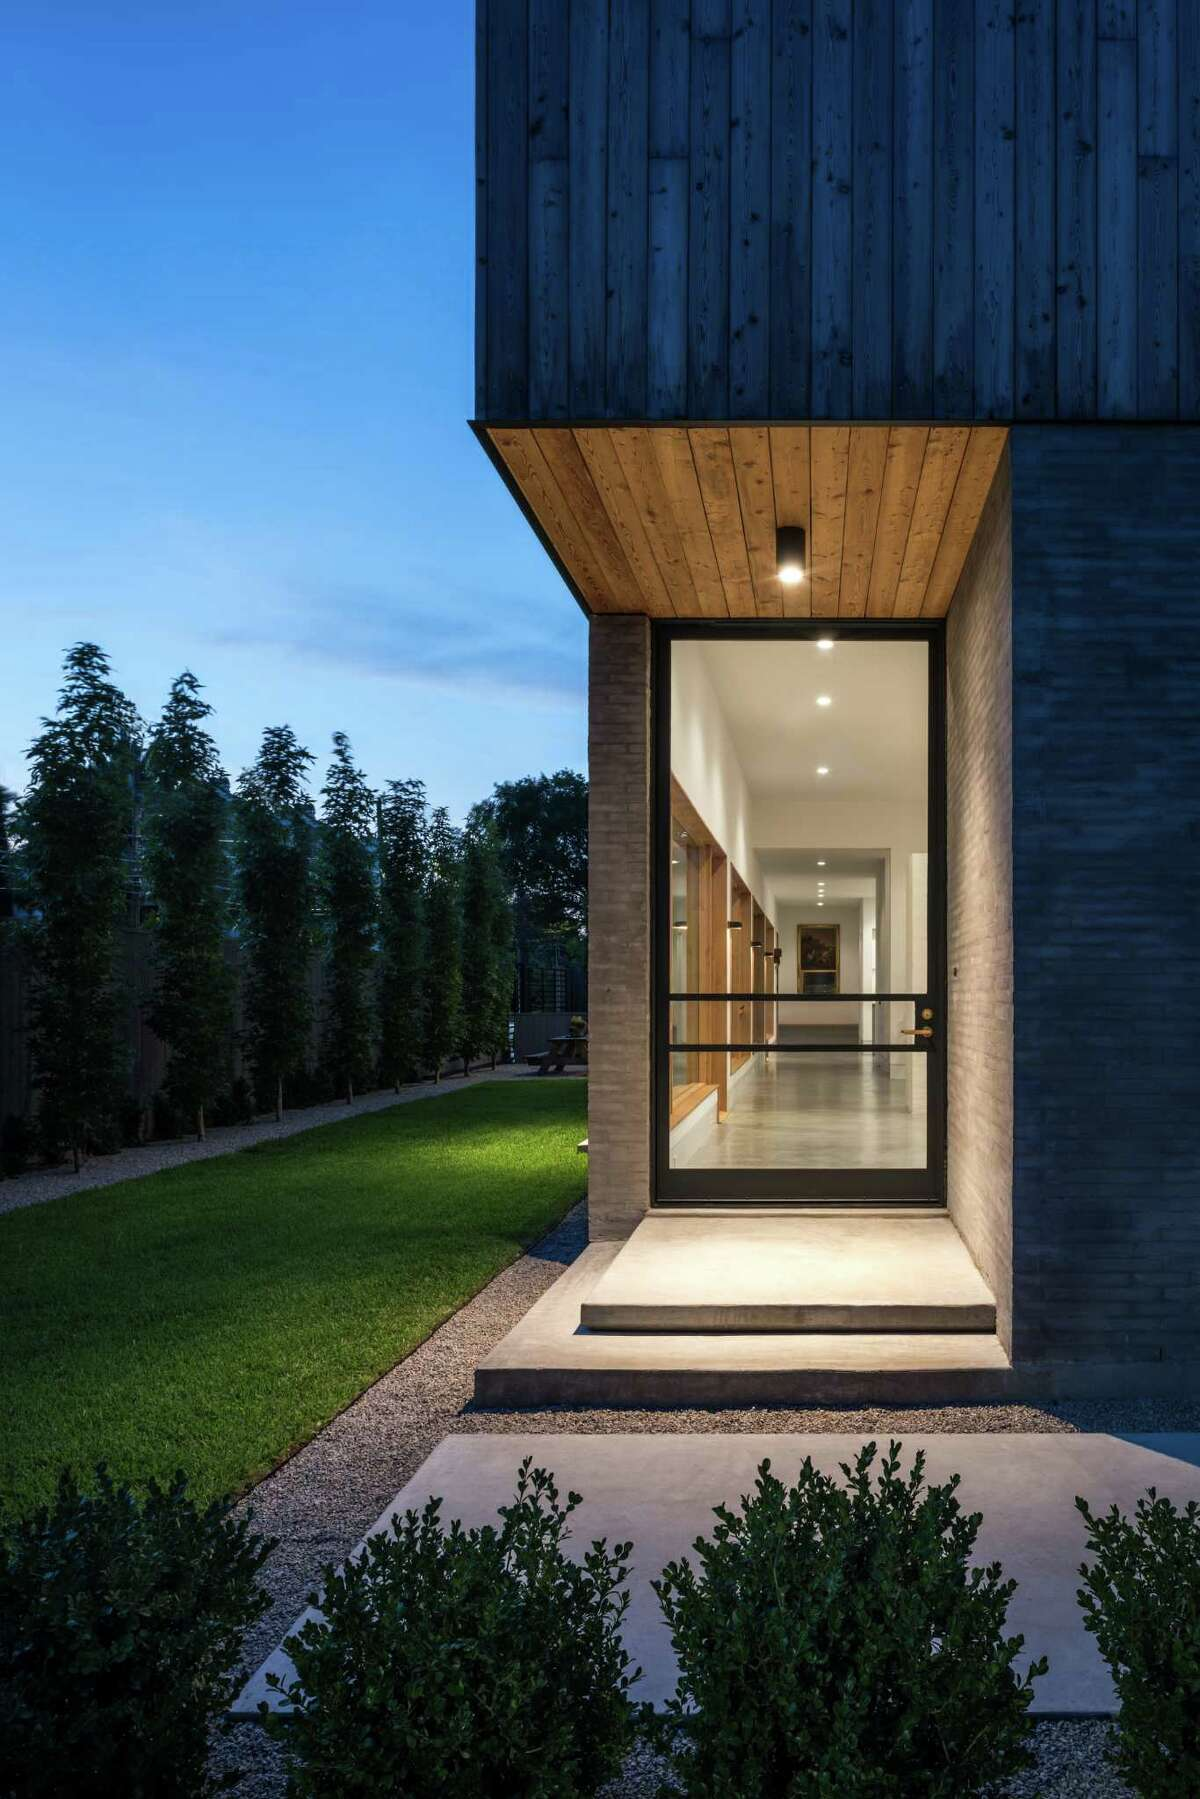 The home's custom front door is made of laser-cut steel and glass.